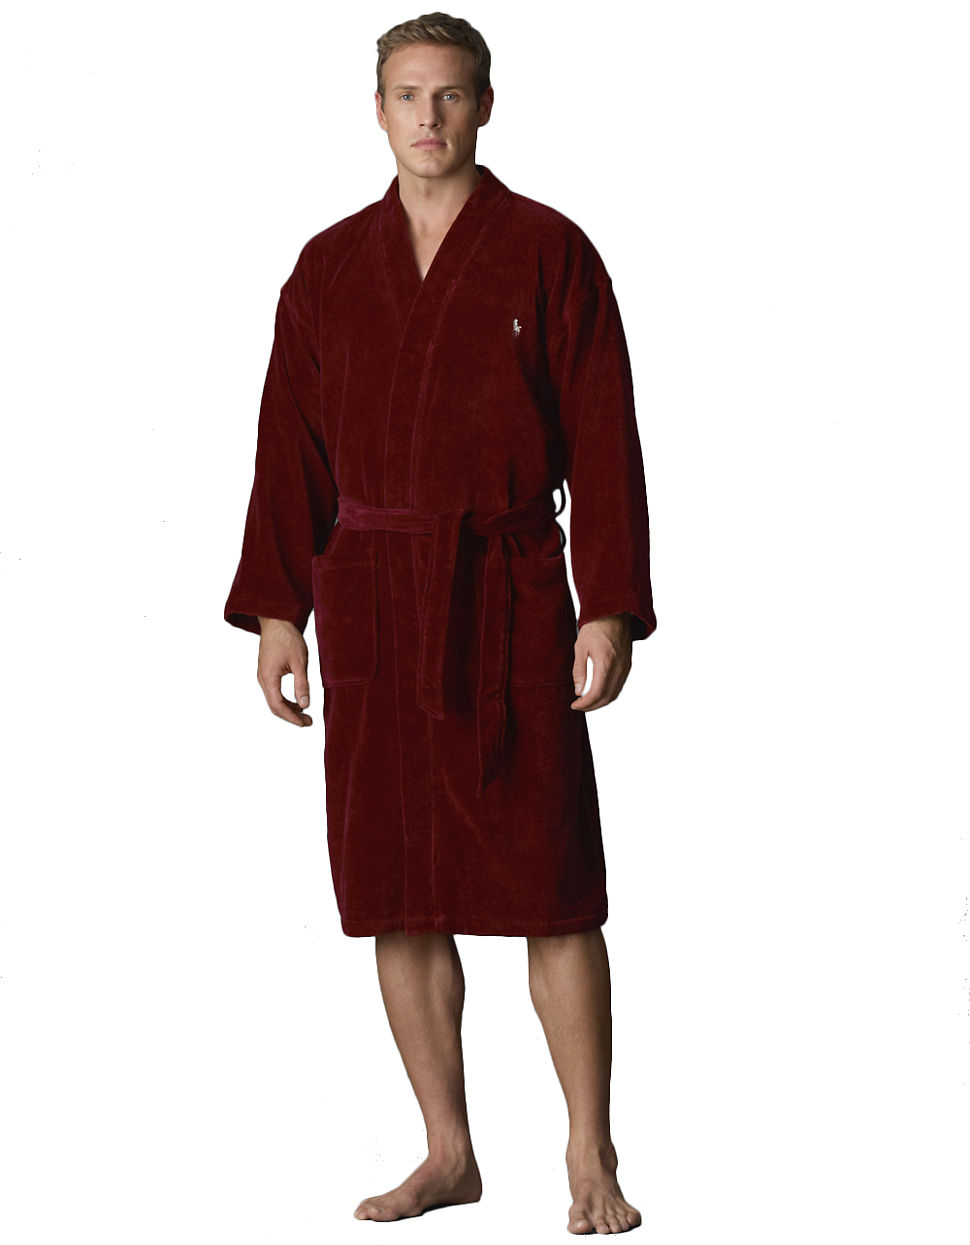 polo ralph lauren kimono velour robe in red for men lyst. Black Bedroom Furniture Sets. Home Design Ideas